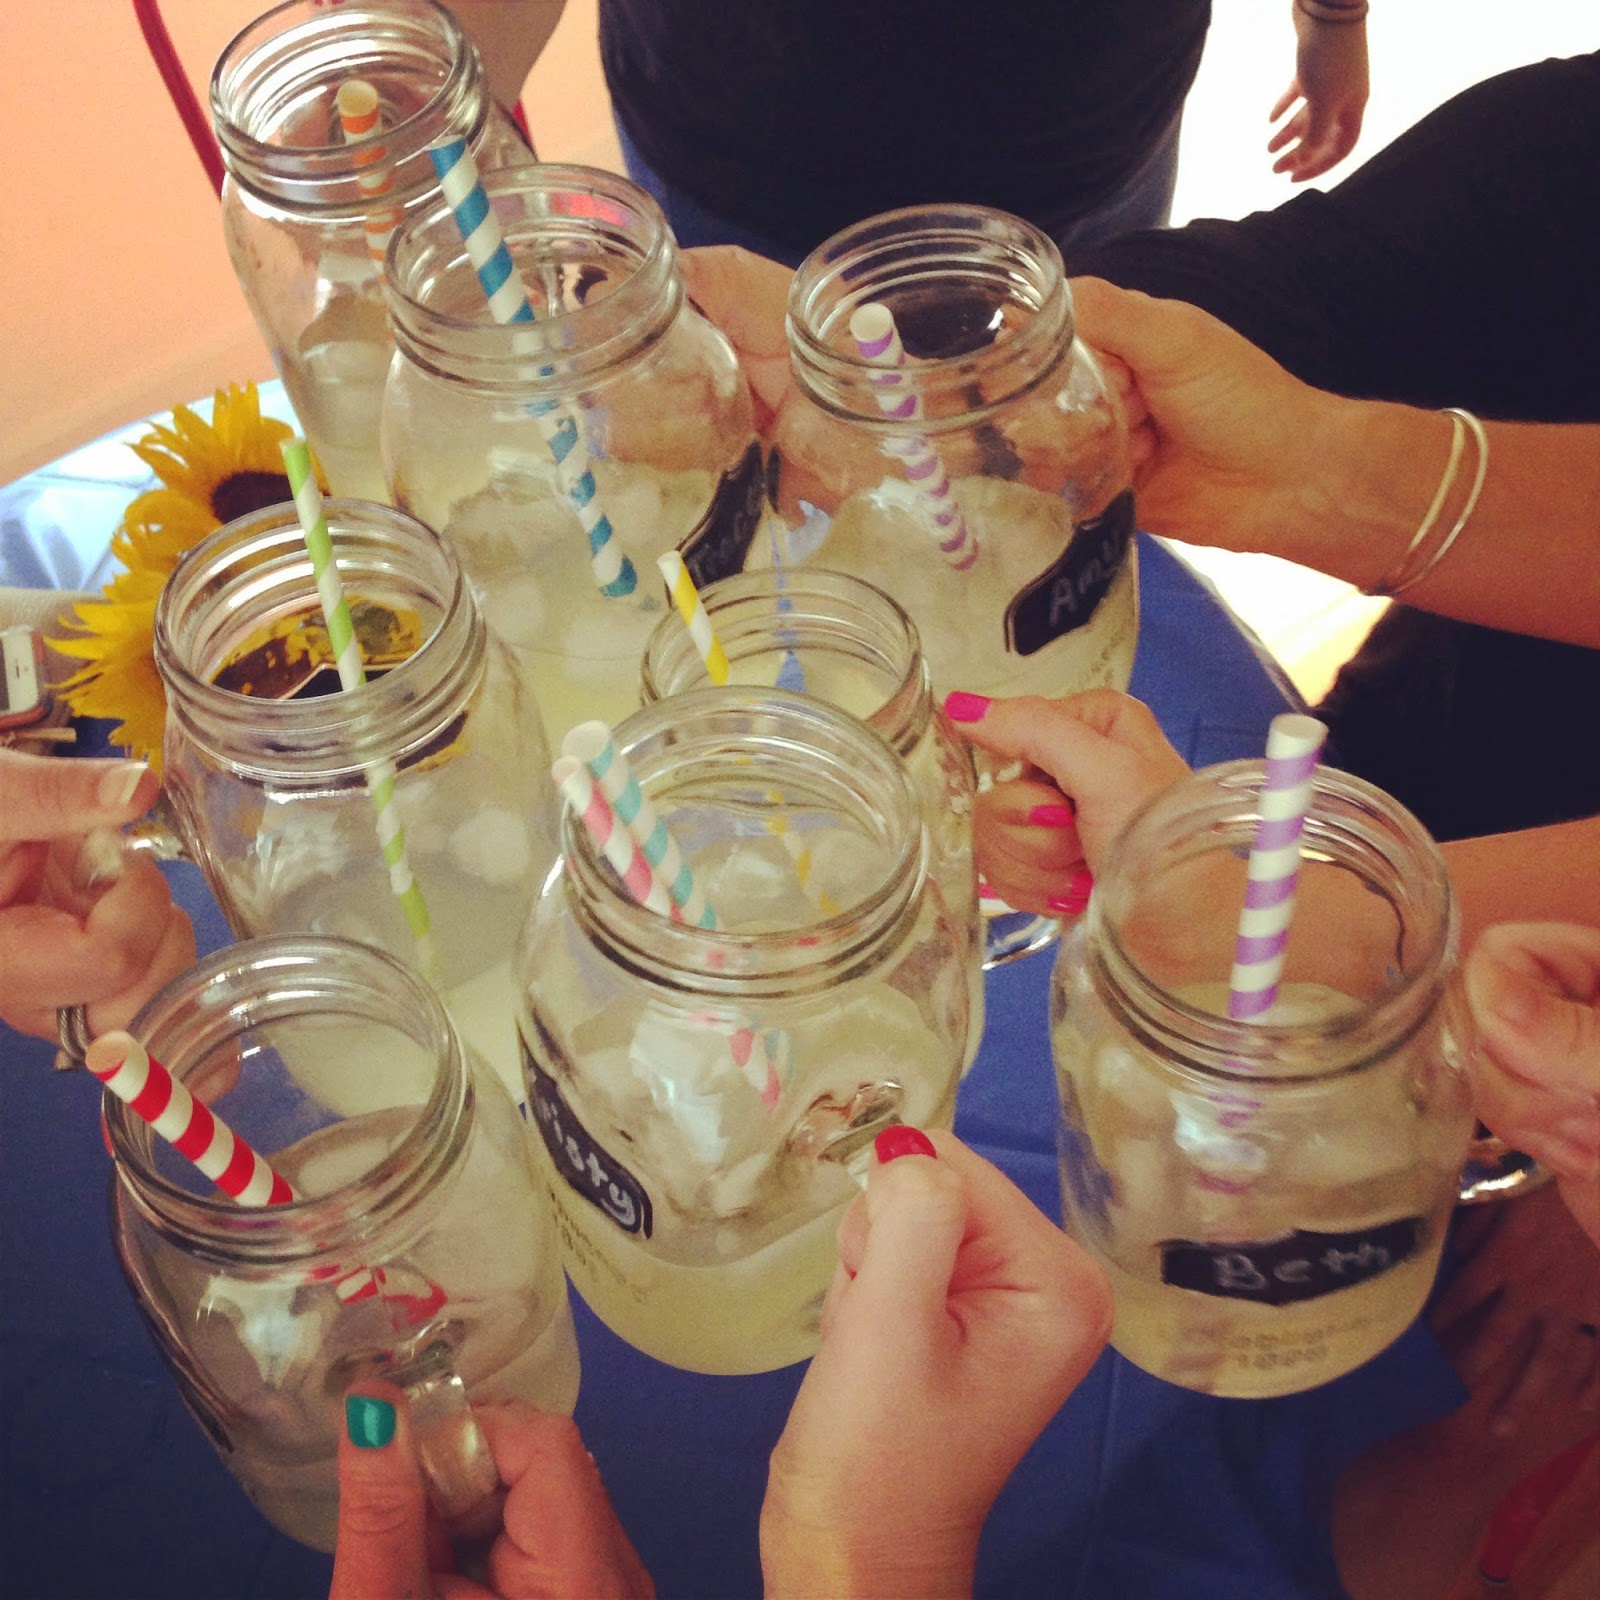 bachelorette party, bachelorette weekend, bachelorette party favors, mason jars